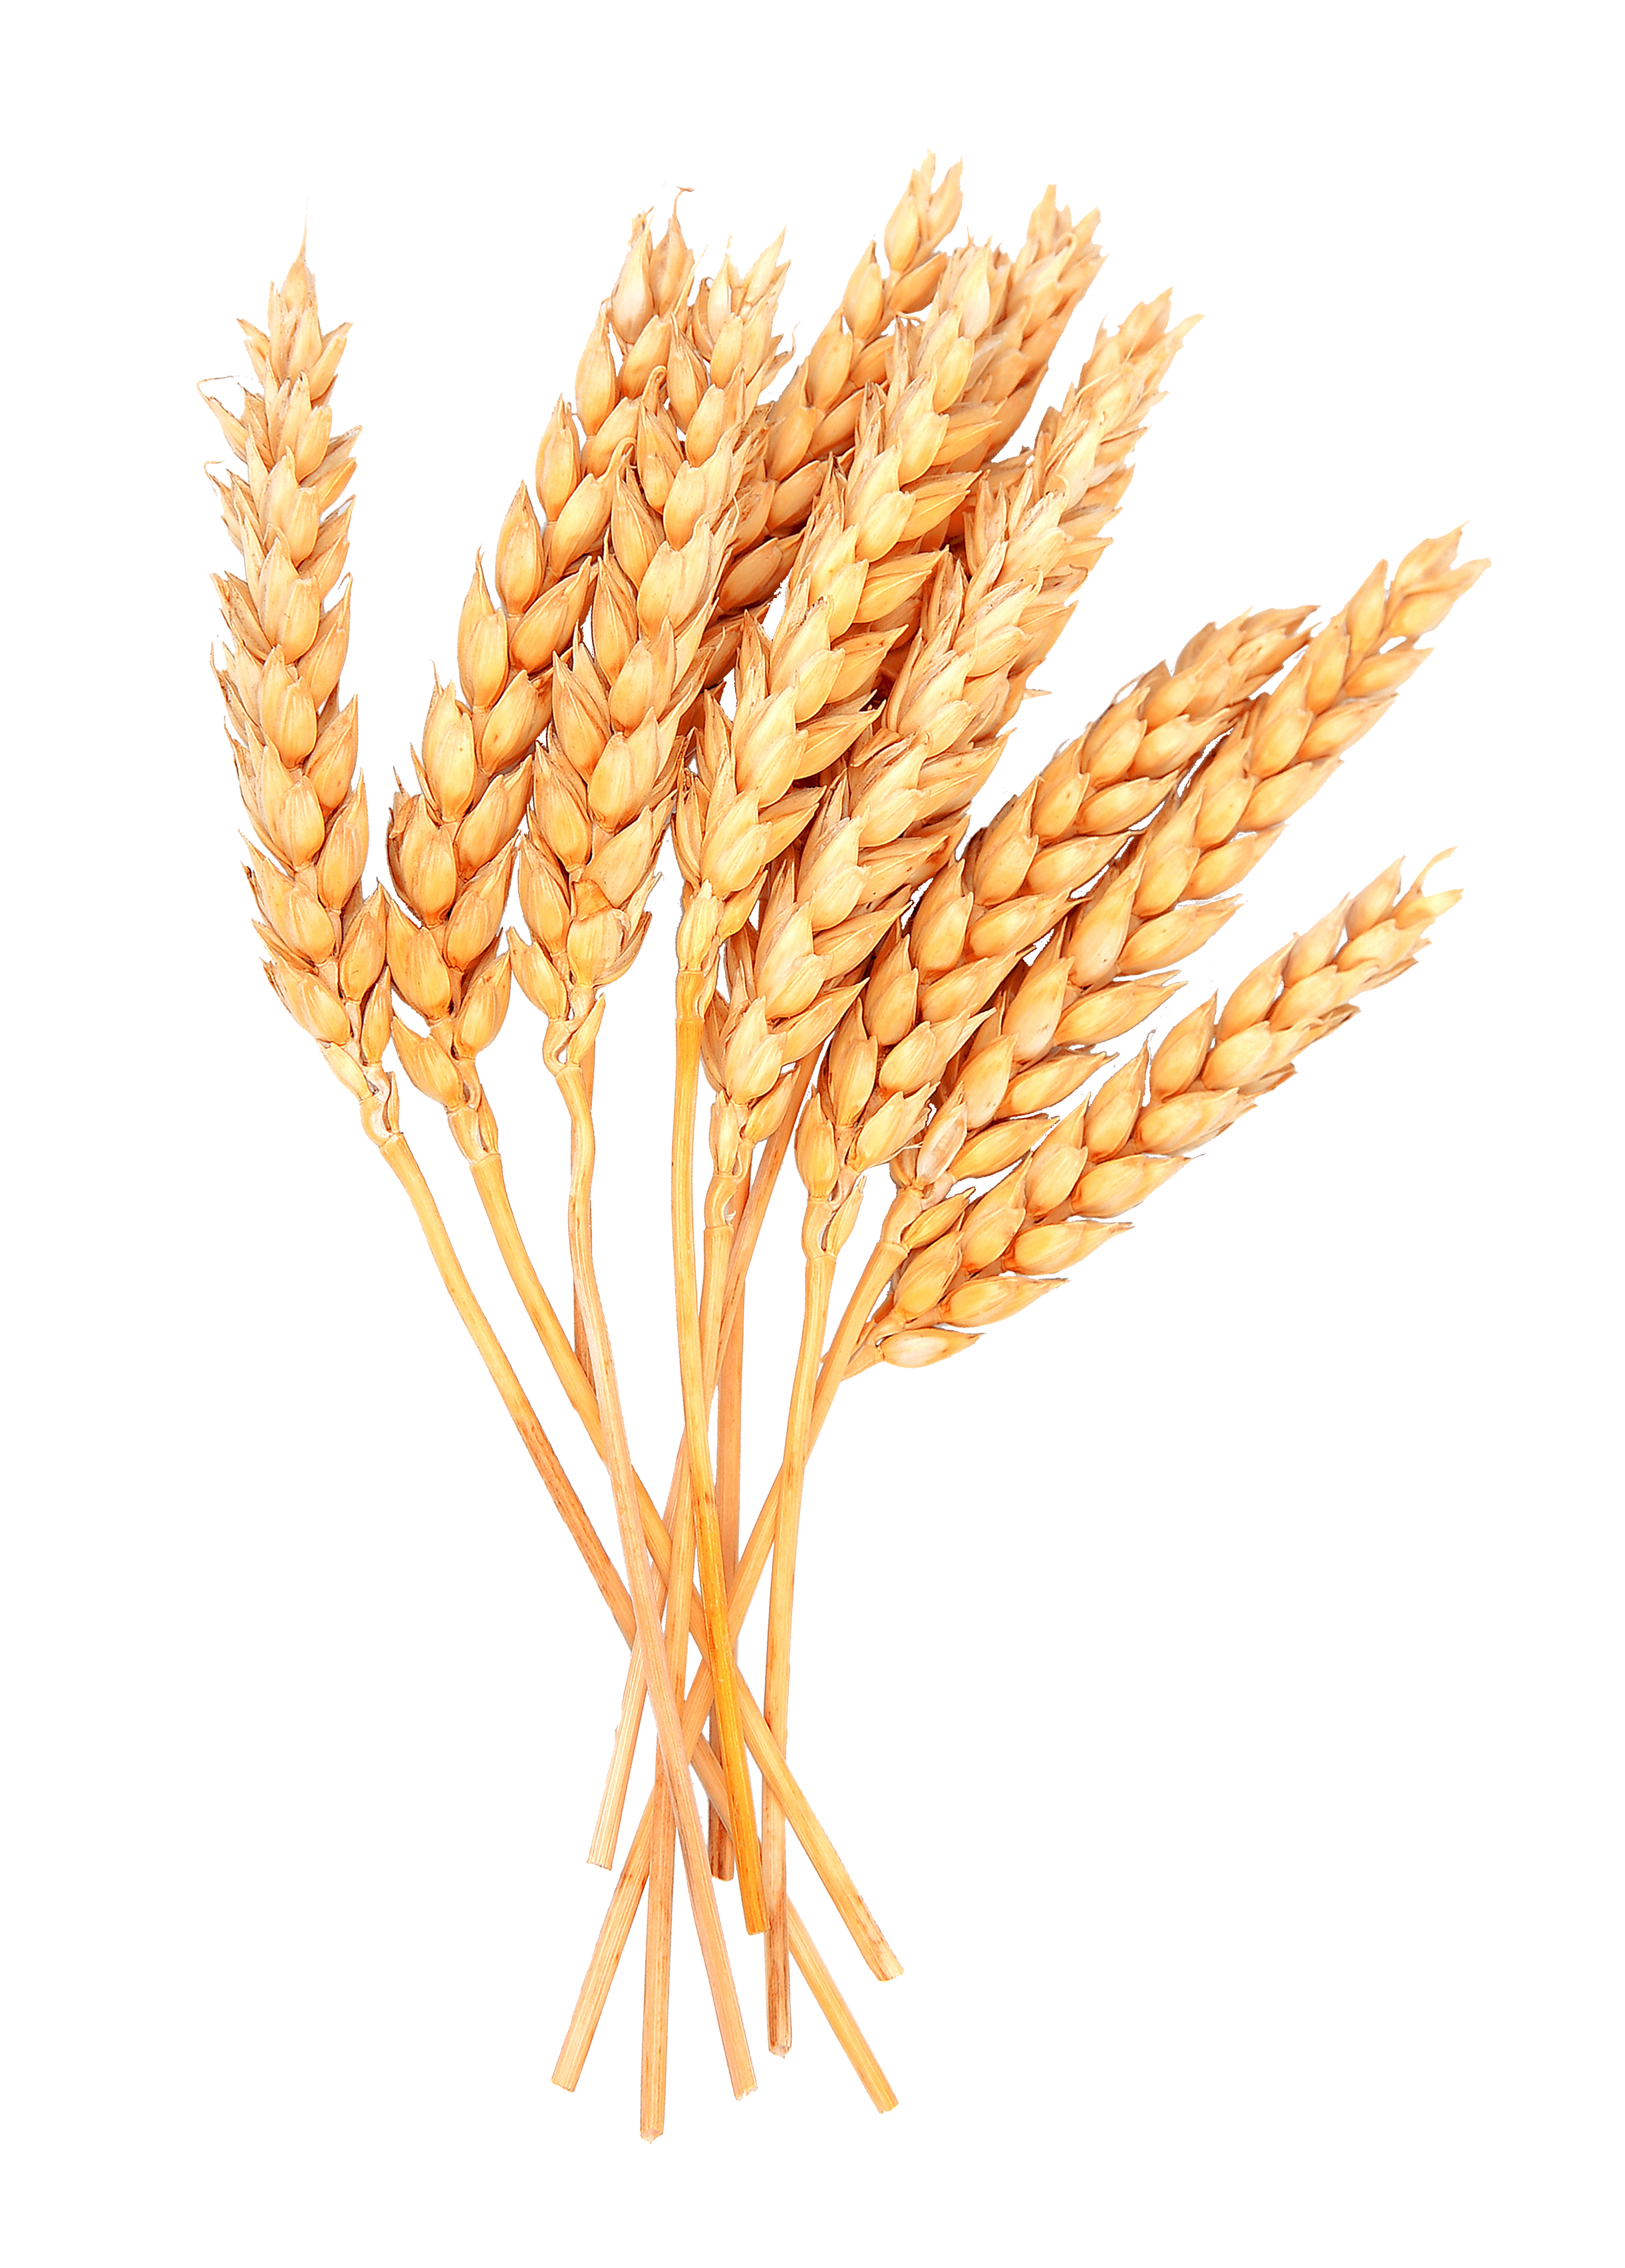 png free library Grains sheaf wheat free. Grain clipart grass bundle